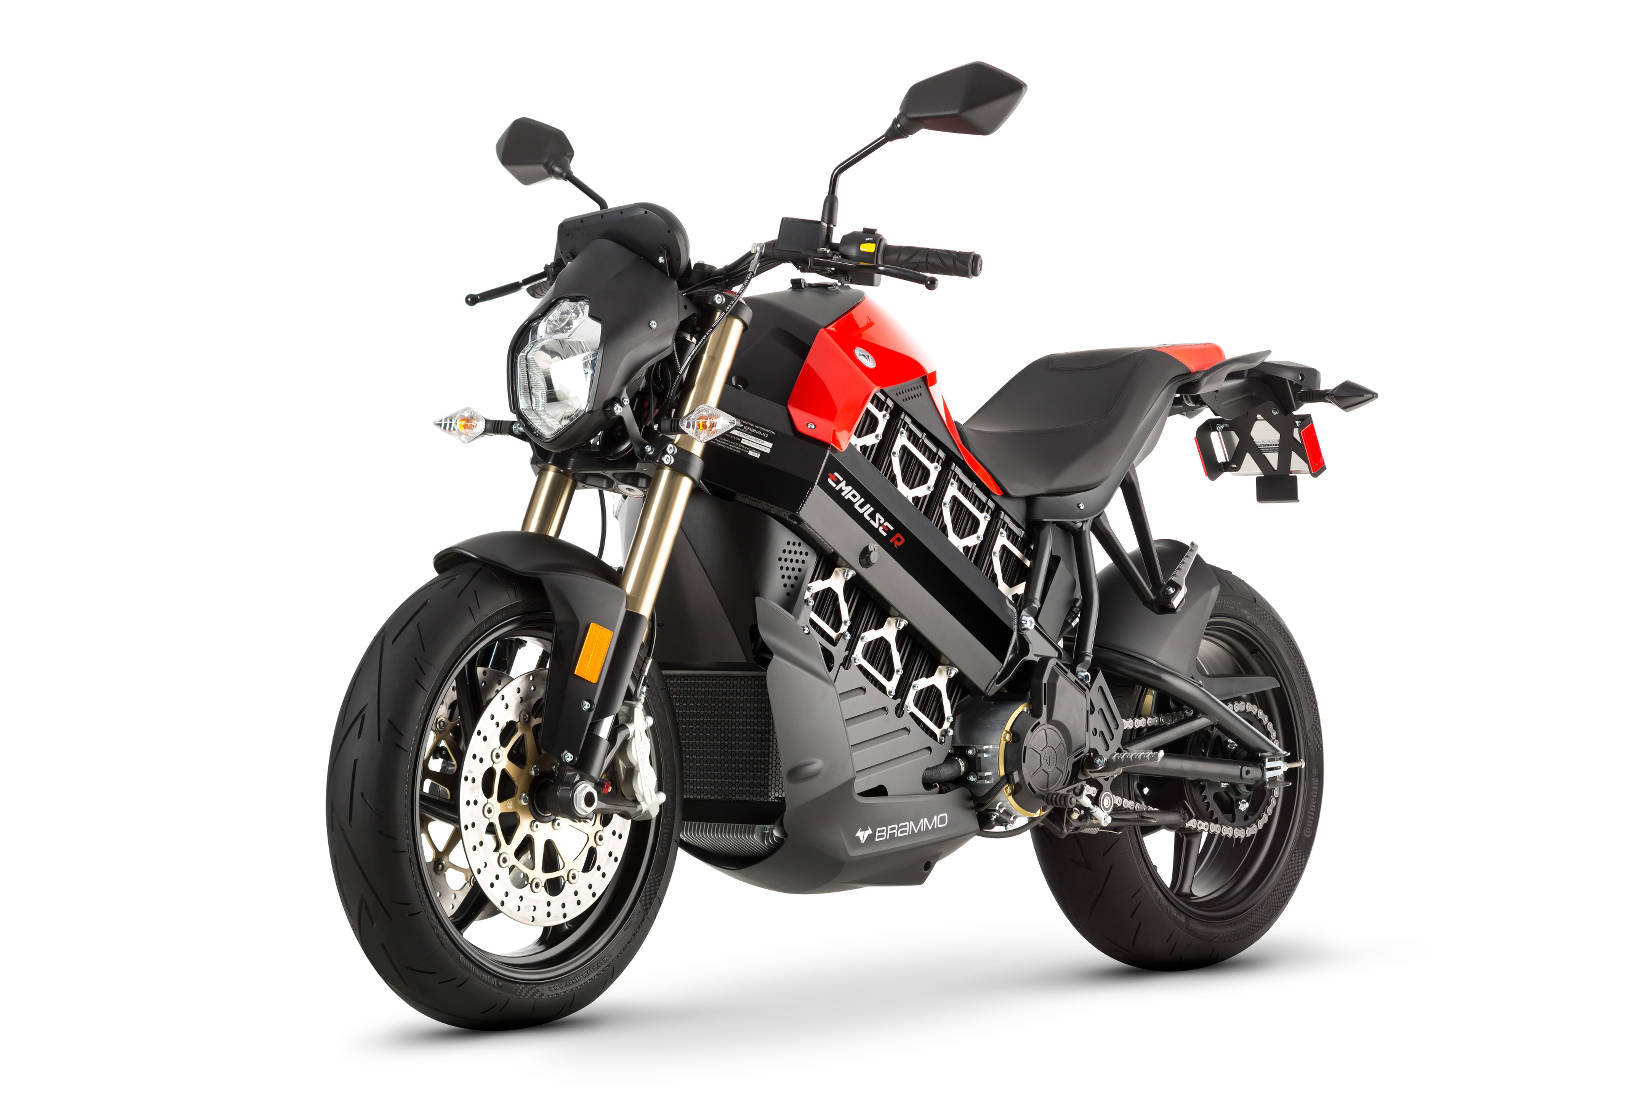 polaris owner of indian and victory motorcycles acquires electric motorcycle business from. Black Bedroom Furniture Sets. Home Design Ideas